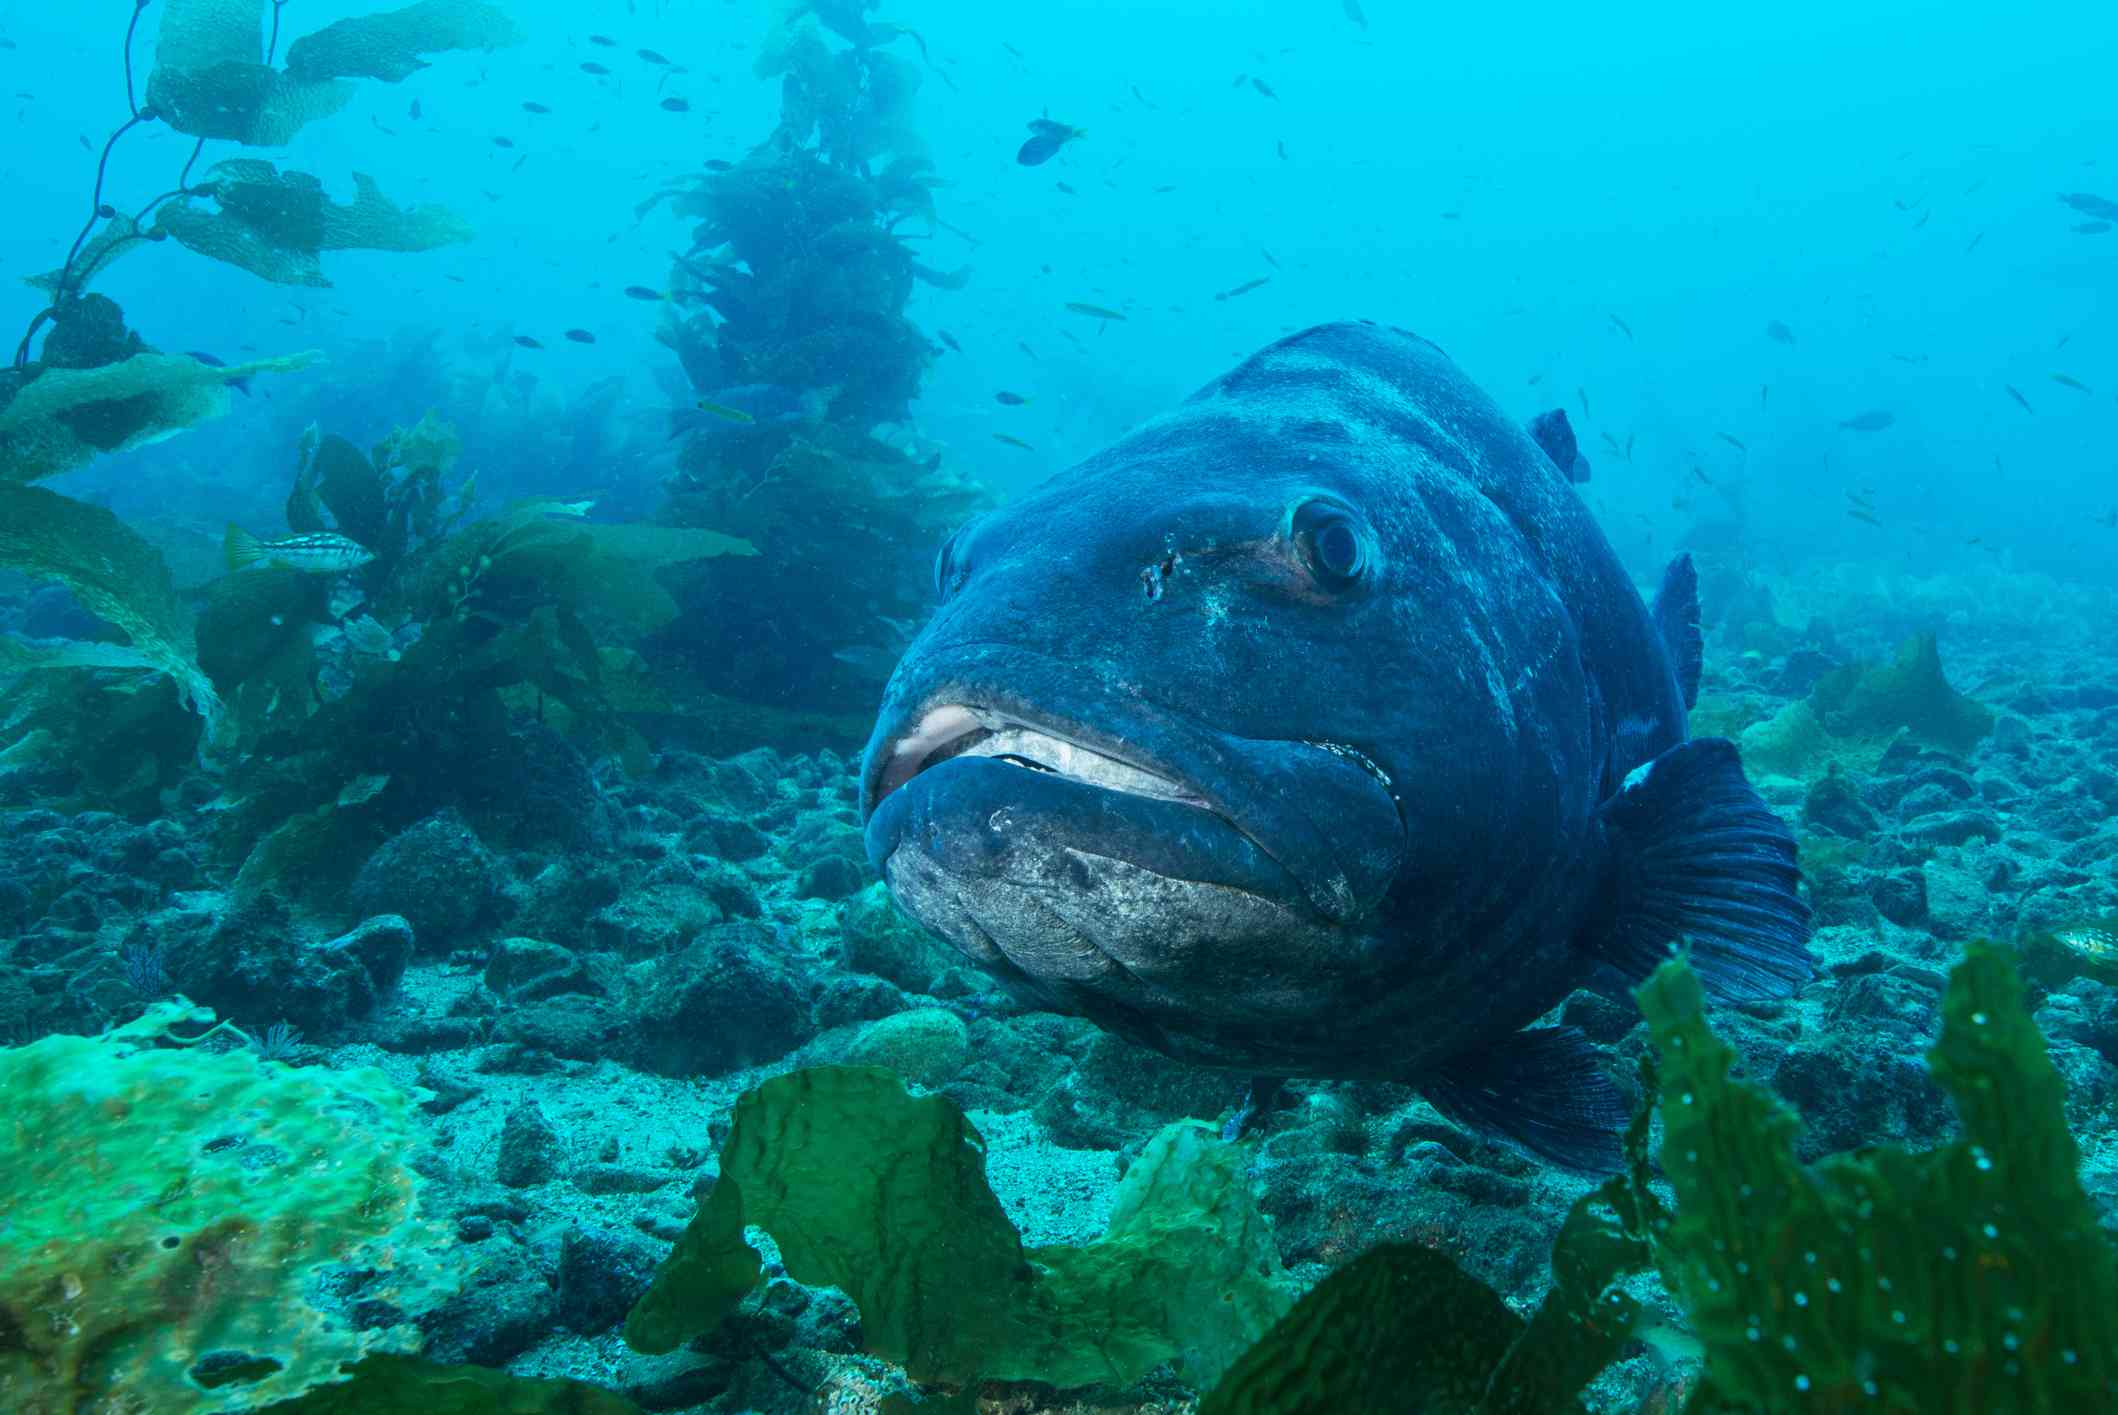 A giant black sea bass in a kelp forest underwater.